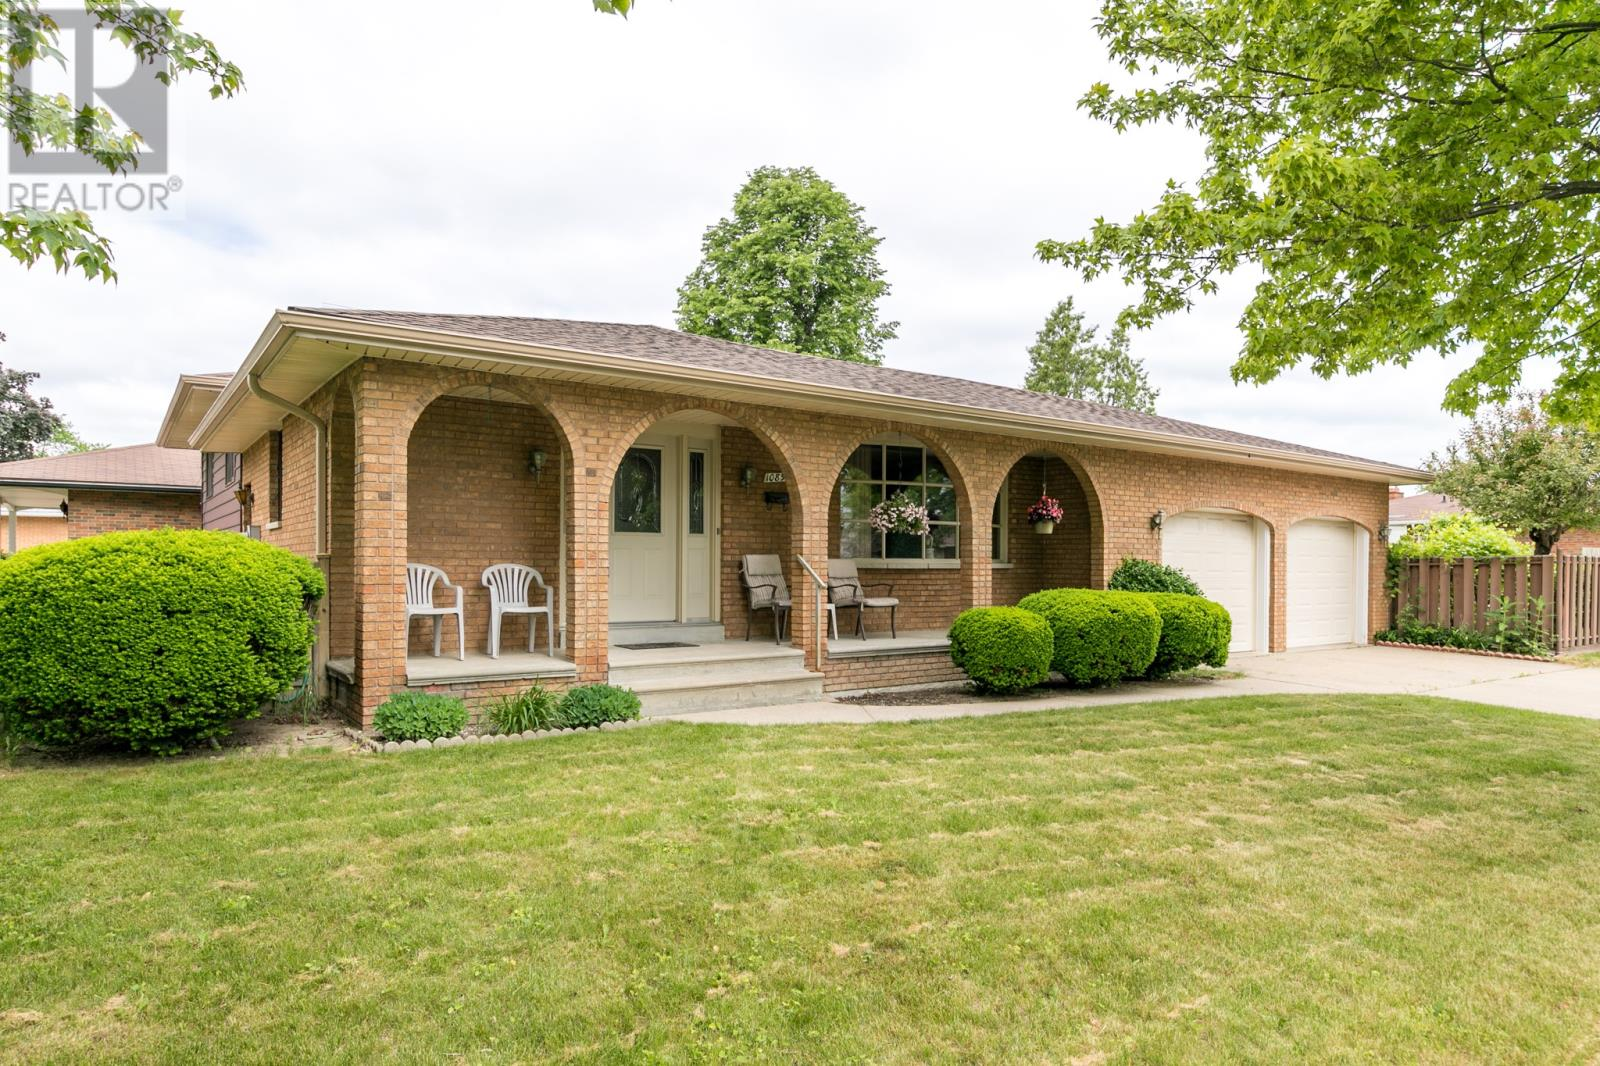 10893 atwater windsor for sale 269900 zolo for sale 10893 atwater windsor on 4 bed 2 bath house solutioingenieria Images